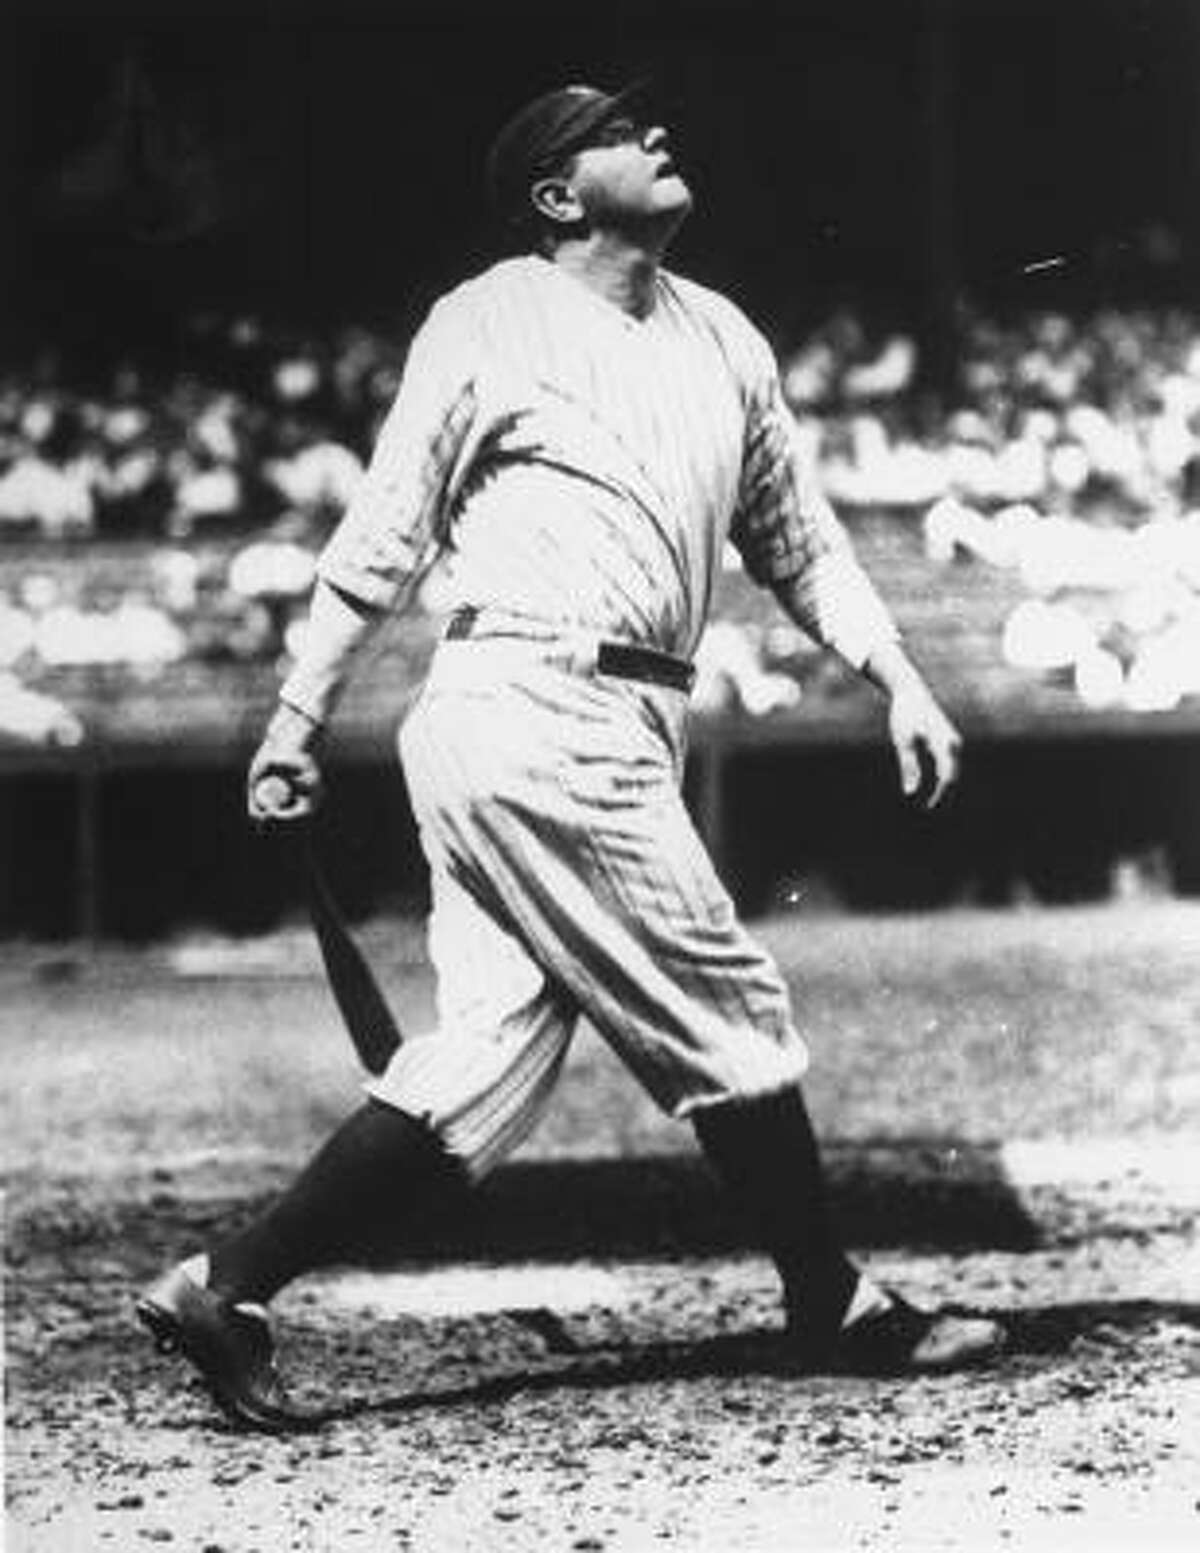 Babe Ruth The baseball great had several adulterous relationships and fathered at least one child, Dorothy Ruth, with one of his mistresses.